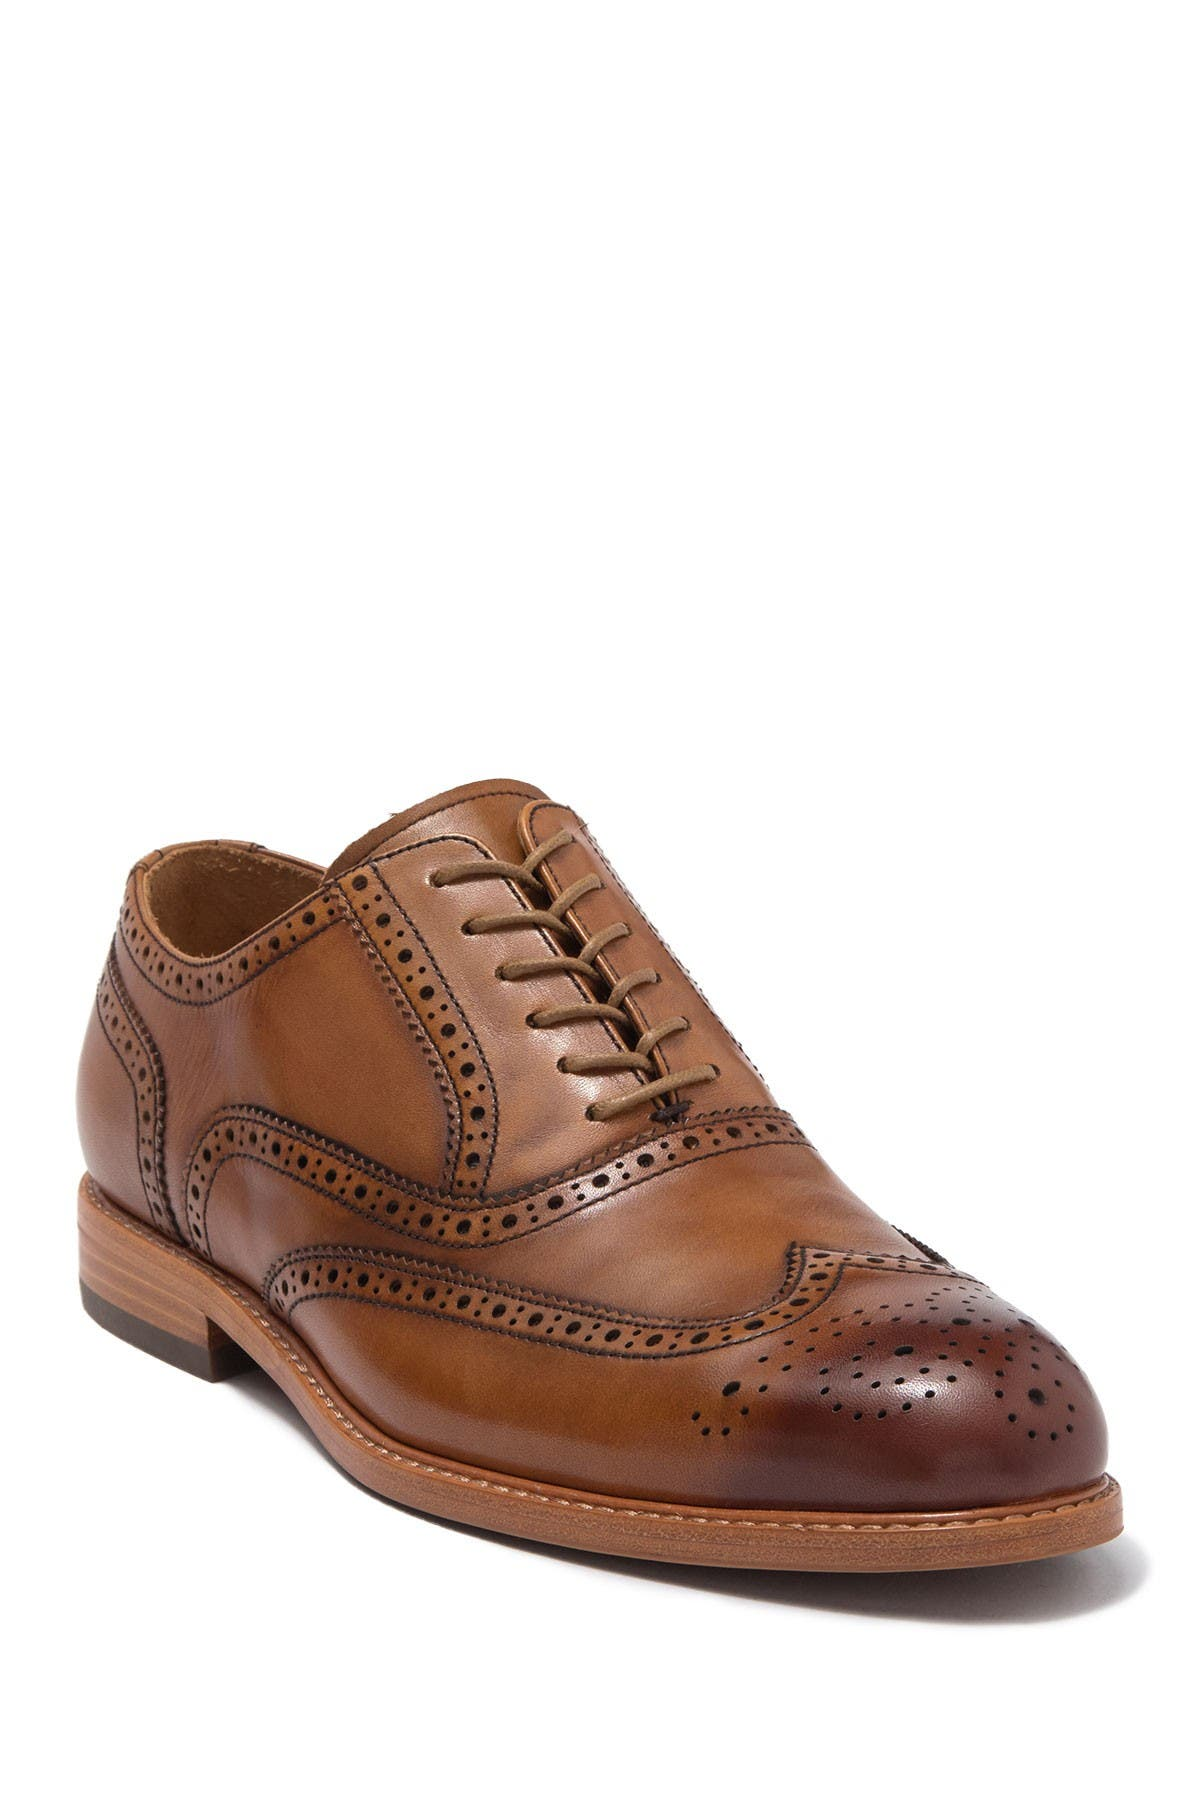 Image of Warfield & Grand Myer Wingtip Brogued Leather Oxford